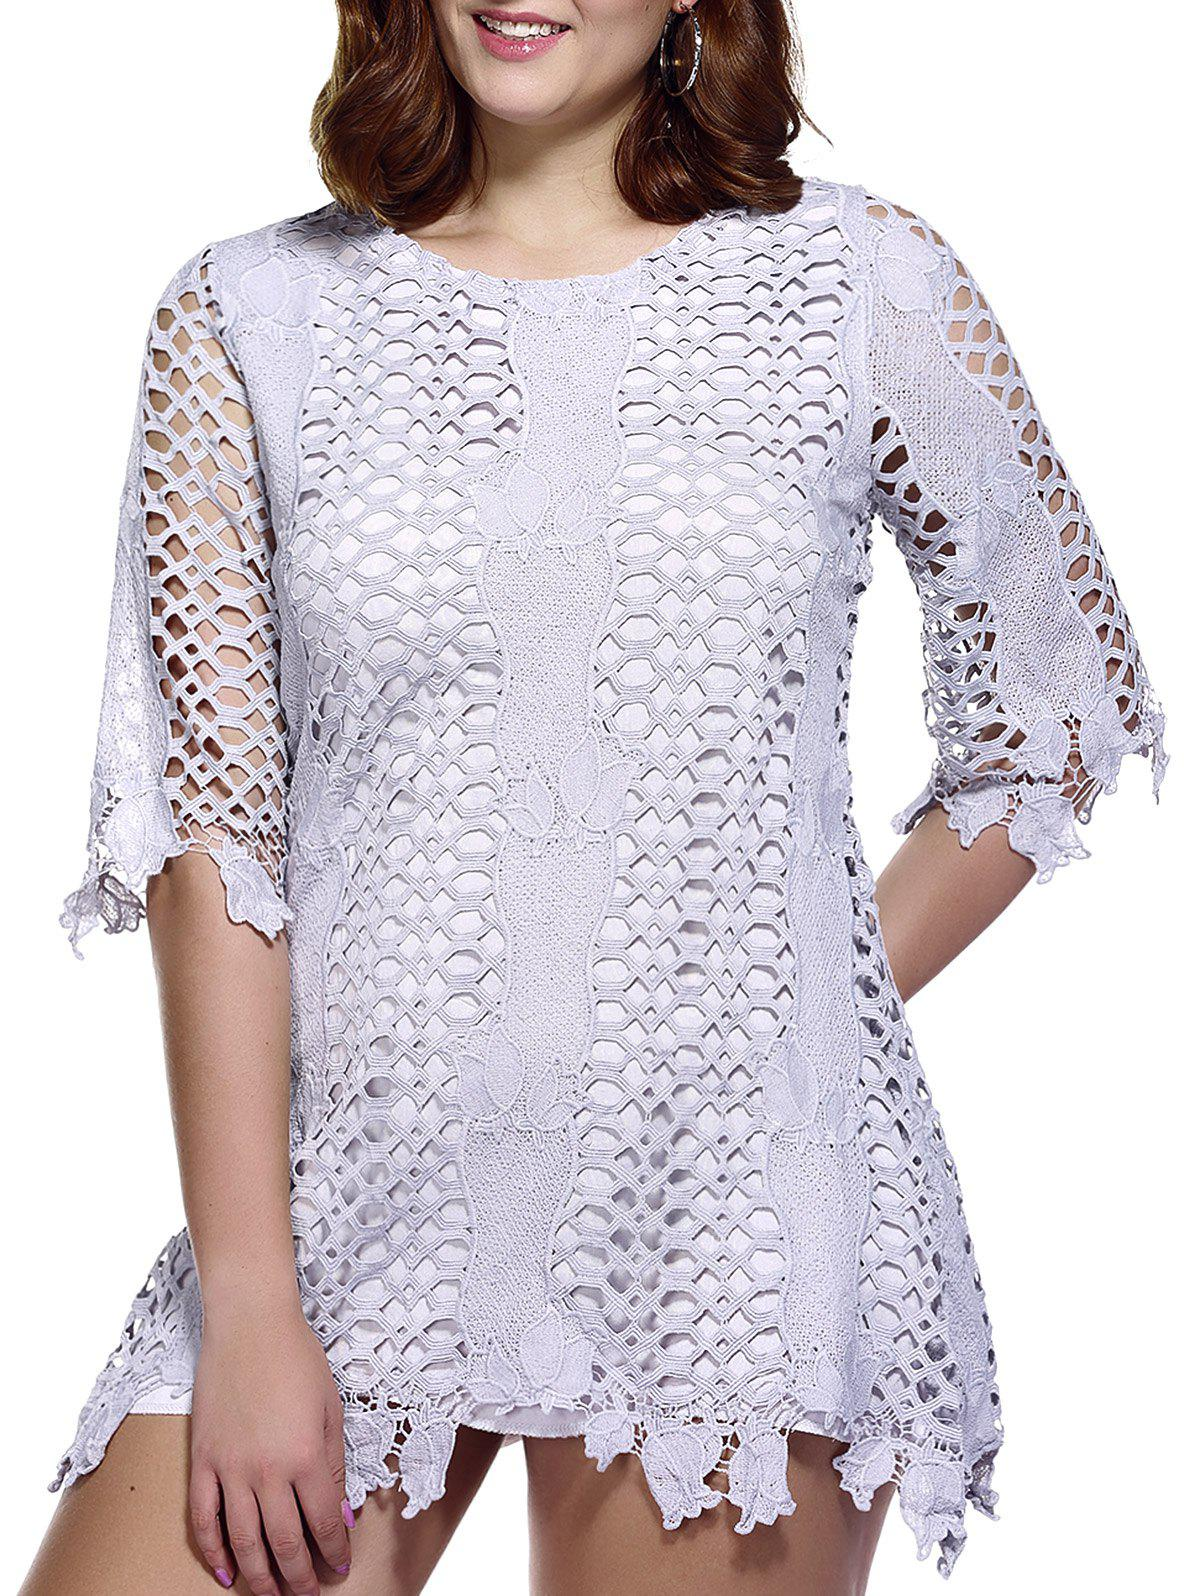 Stylish Women's Plus Size Hollow Out Lace Overlay Dress - GRAY ONE SIZE(FIT SIZE L TO 3XL)